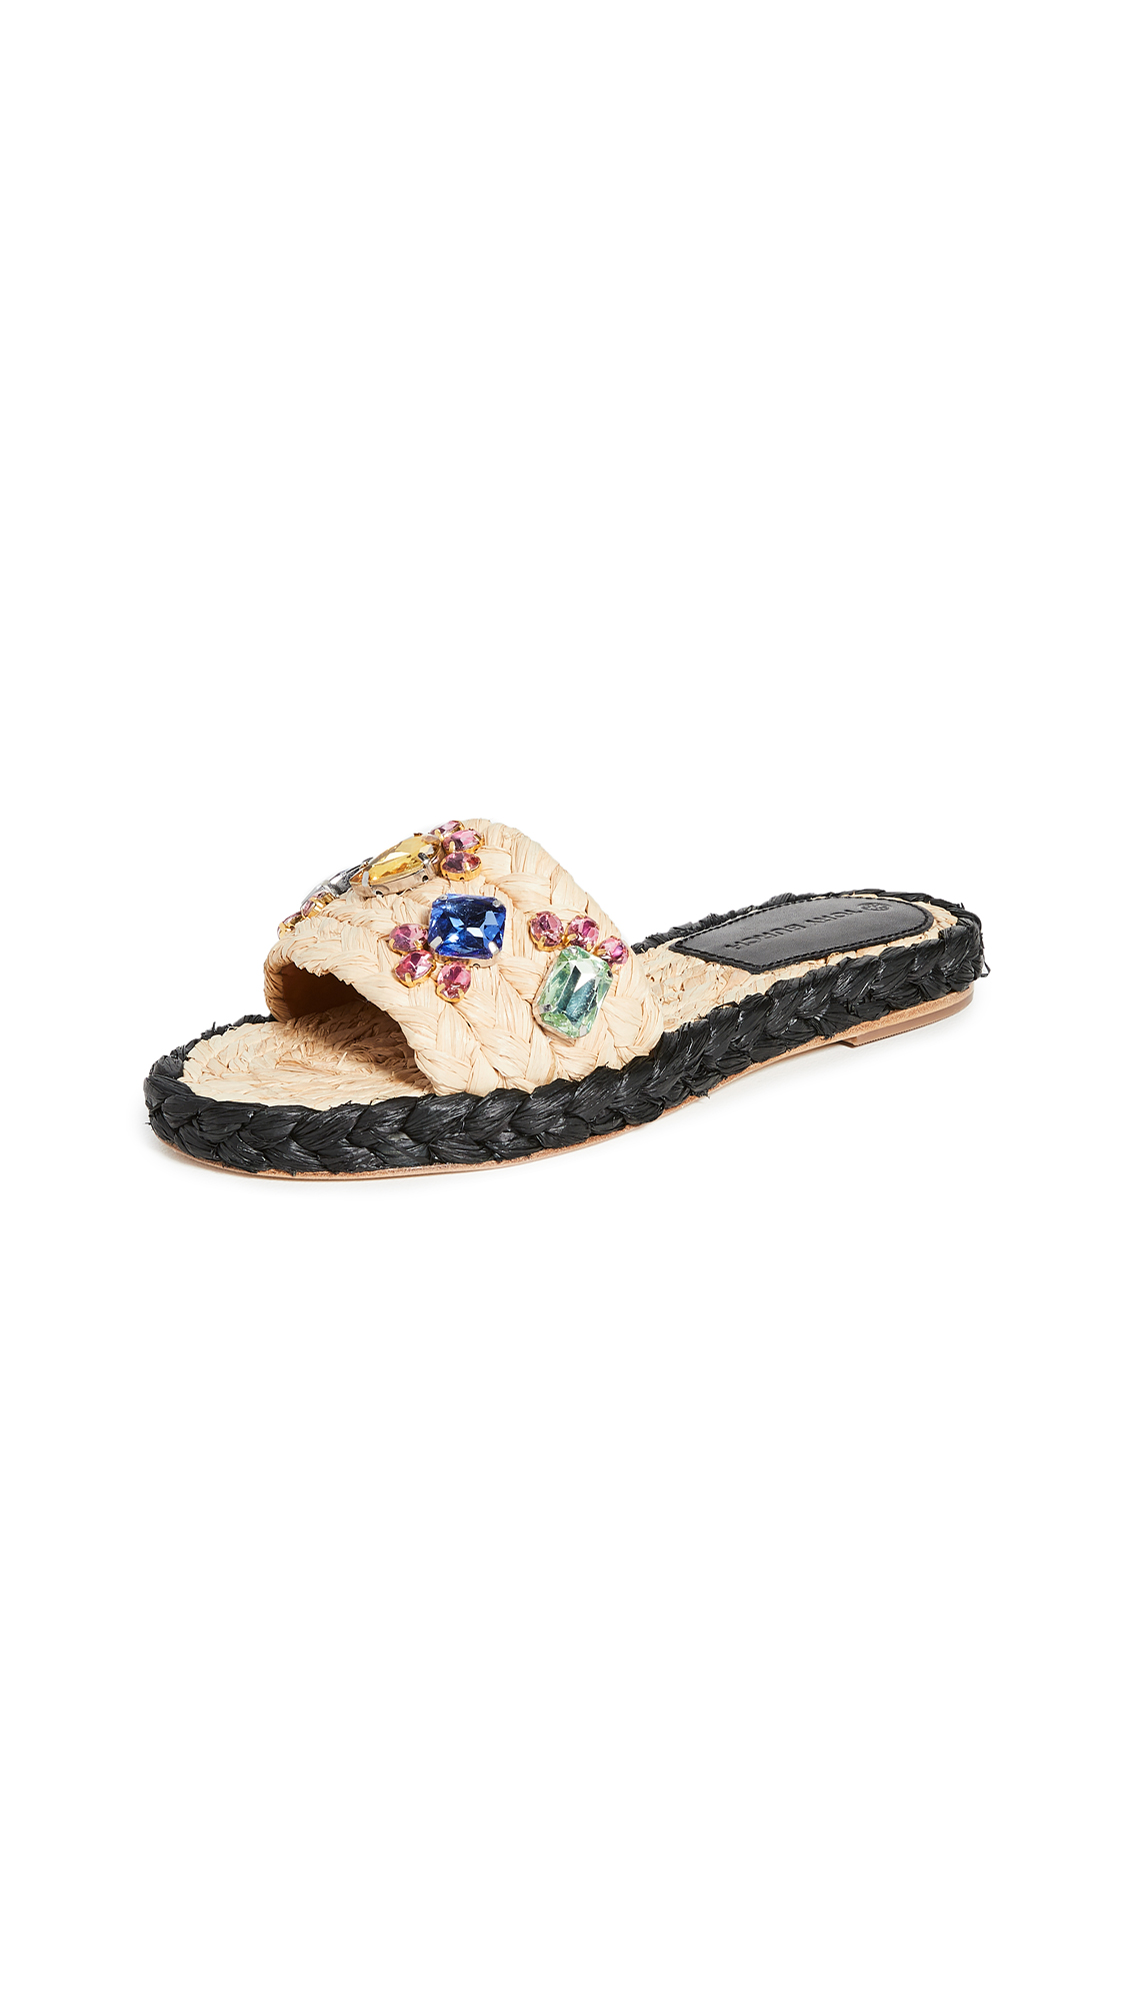 Tory Burch Crystal Raffia Slides – 50% Off Sale